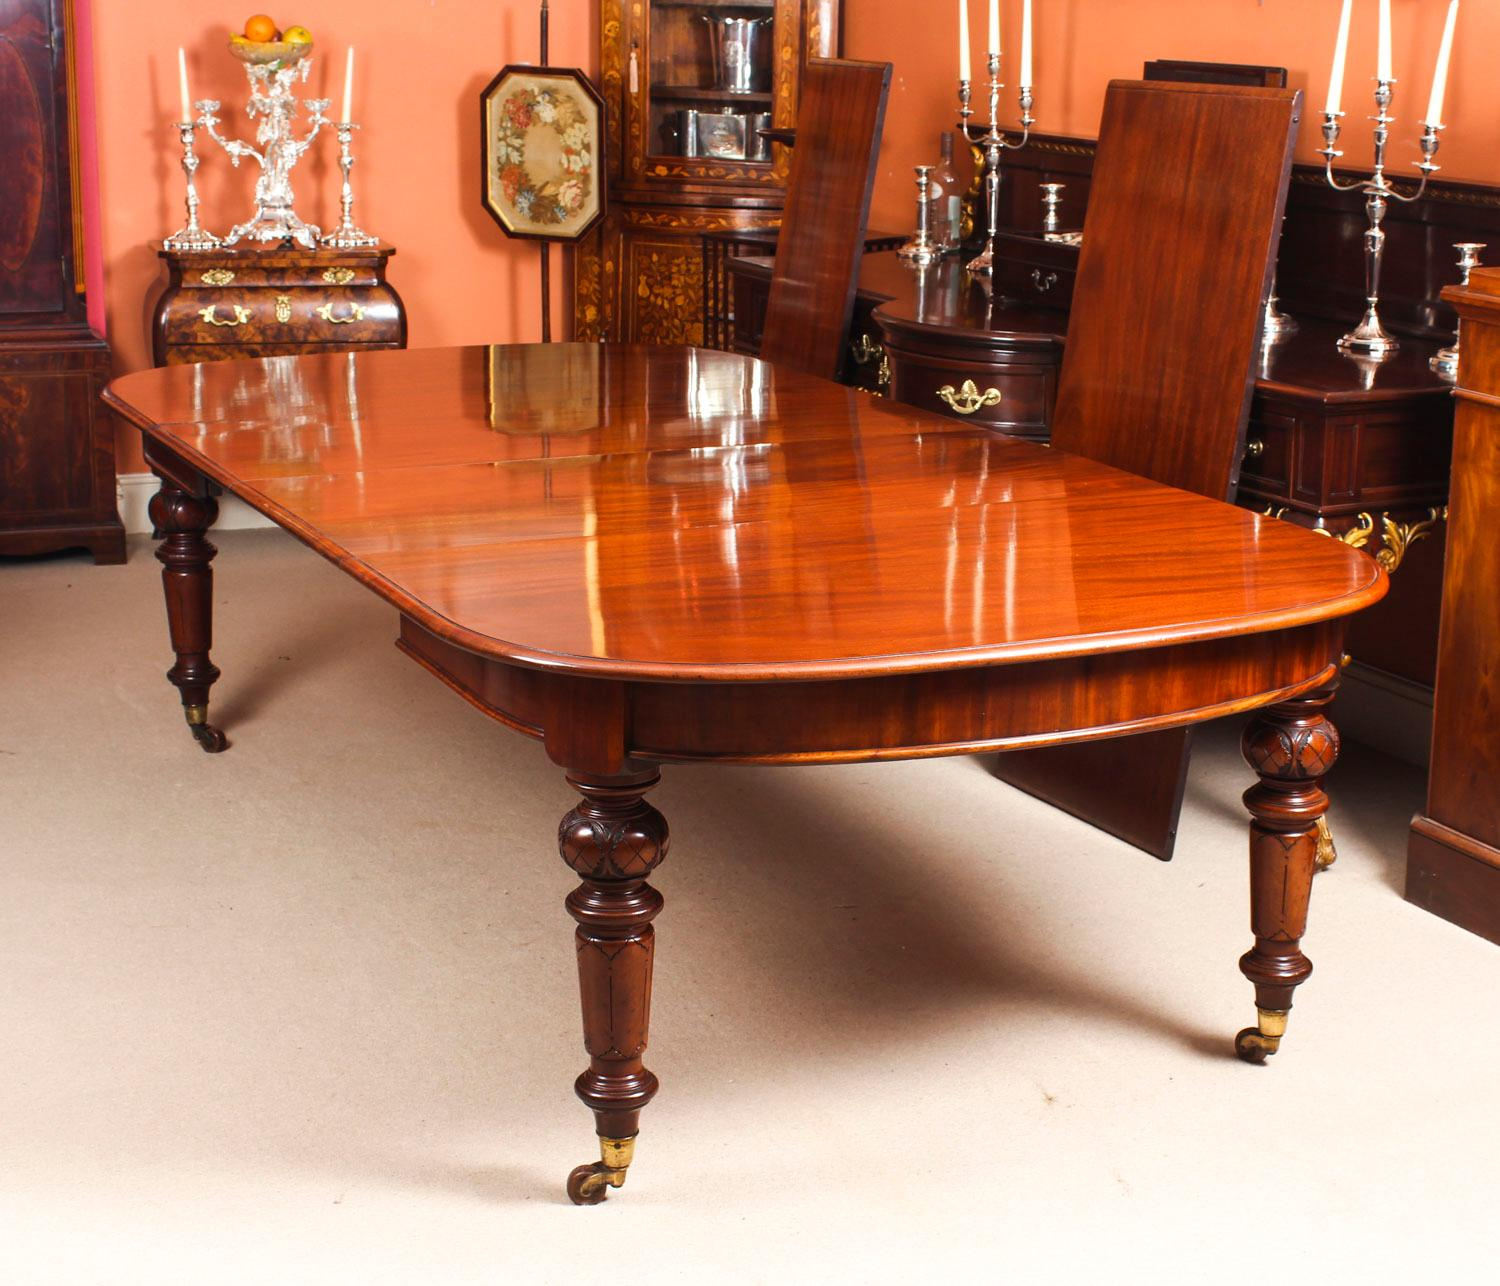 Antique Victorian D-End Mahogany Dining Table and 14 Chairs, 19th Century  For Sale at 1stdibs - Antique Victorian D-End Mahogany Dining Table And 14 Chairs, 19th